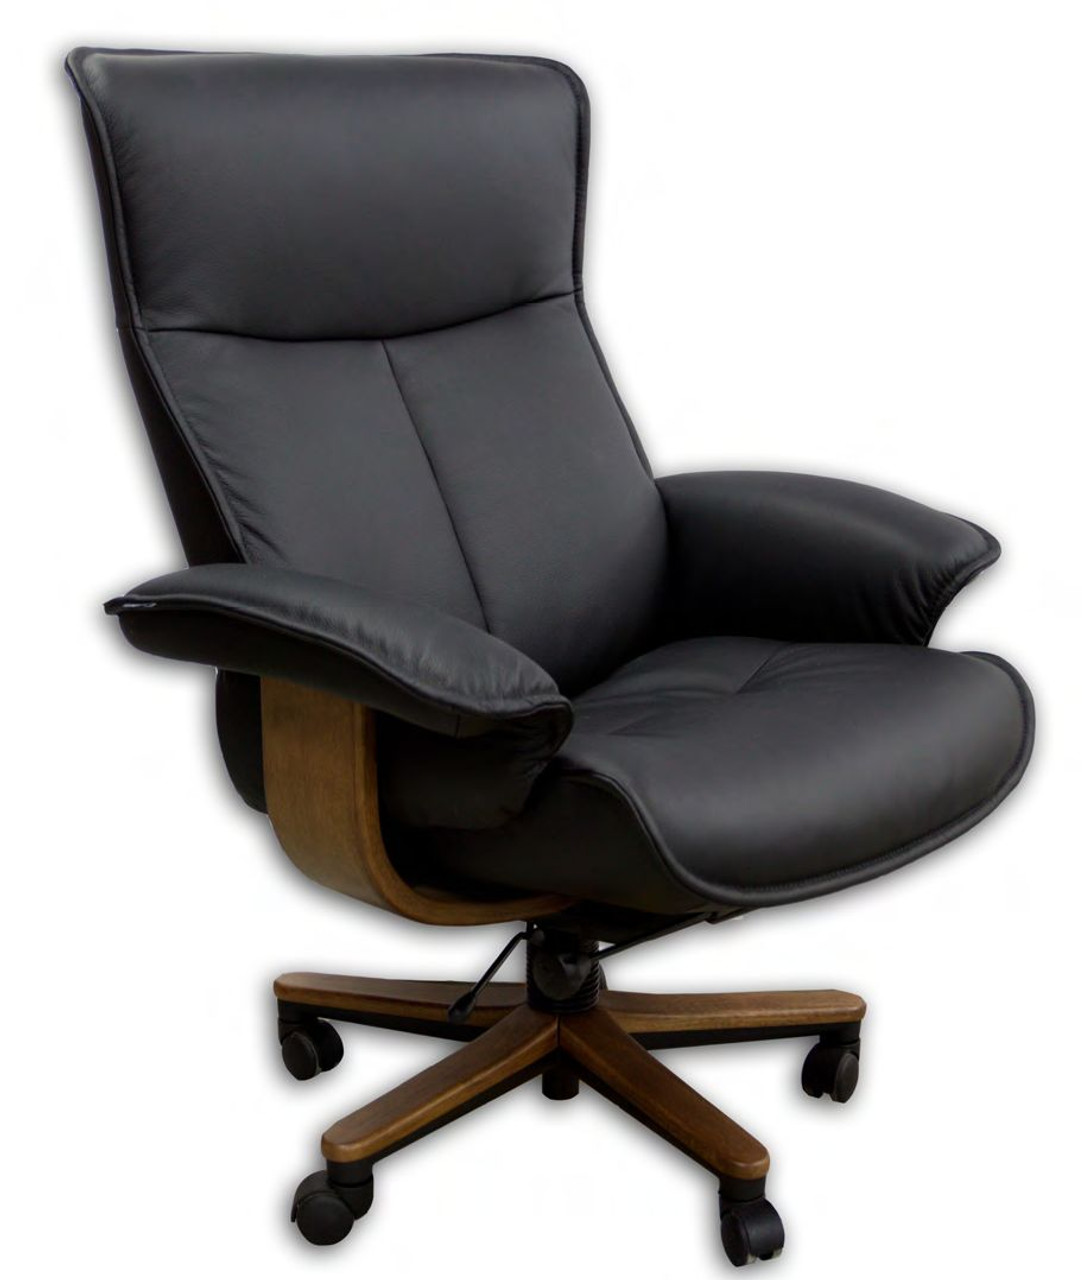 Sensational Senator Office Chair Legally Comfortable By Fjords Gmtry Best Dining Table And Chair Ideas Images Gmtryco